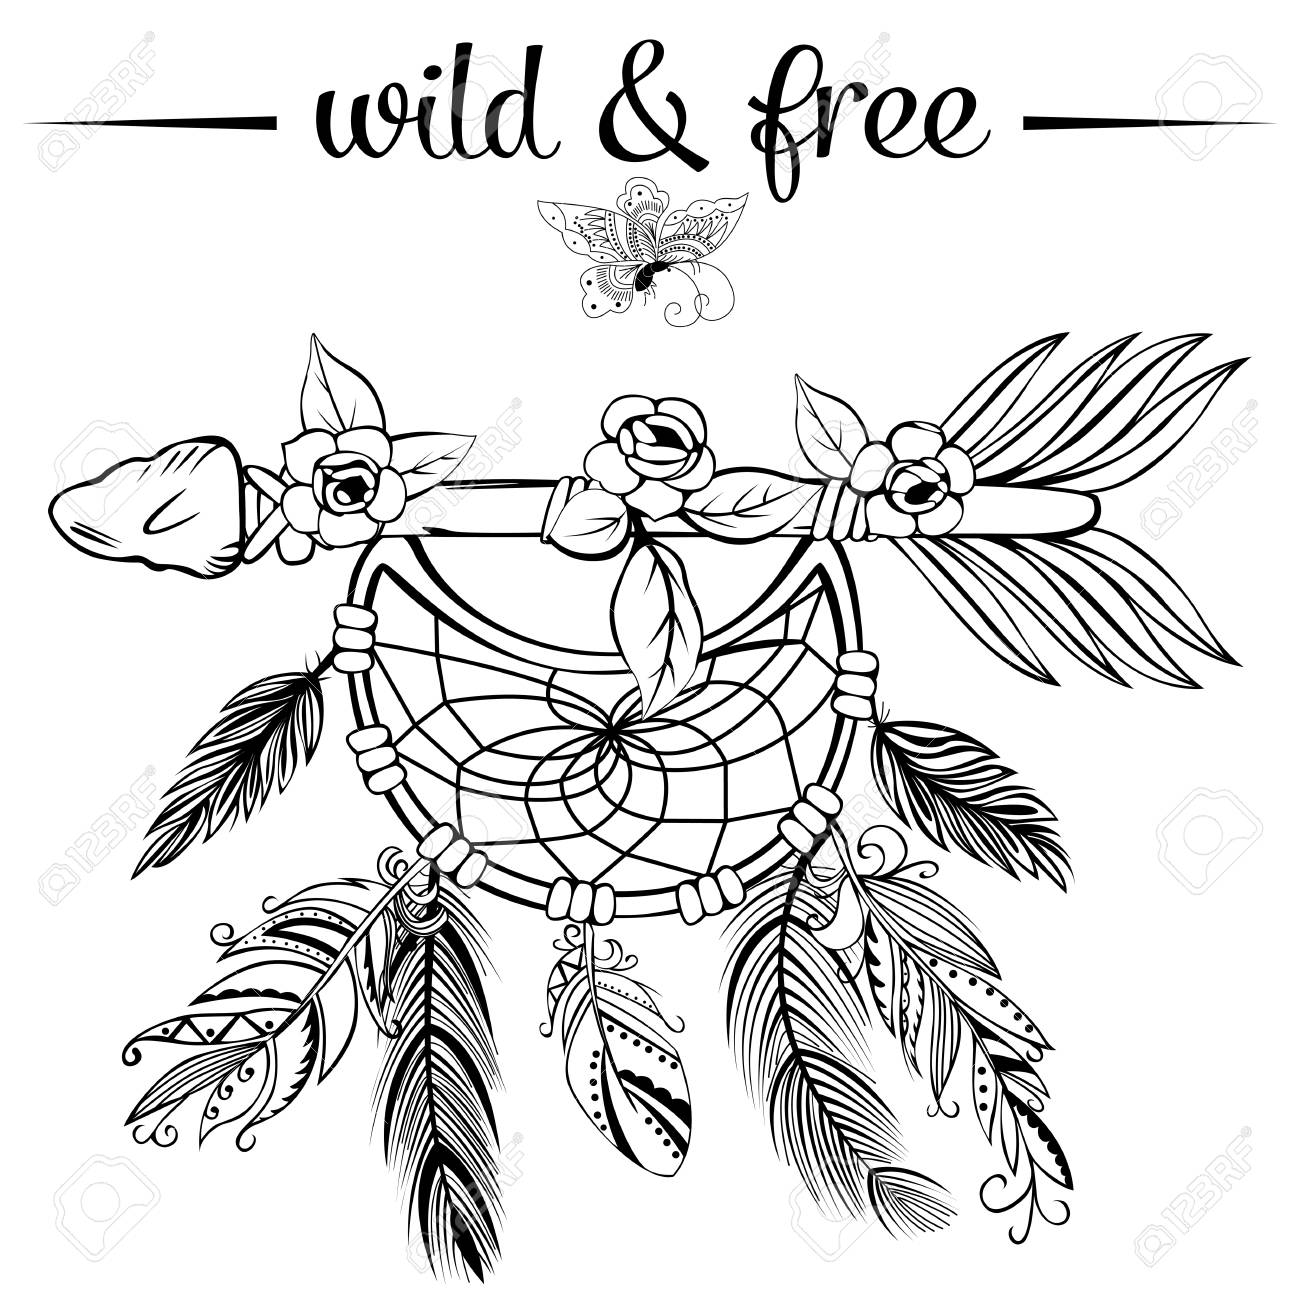 1300x1300 Vector Of Hand Drawn Wooden Arrow With Feathers, Dreamcatcher